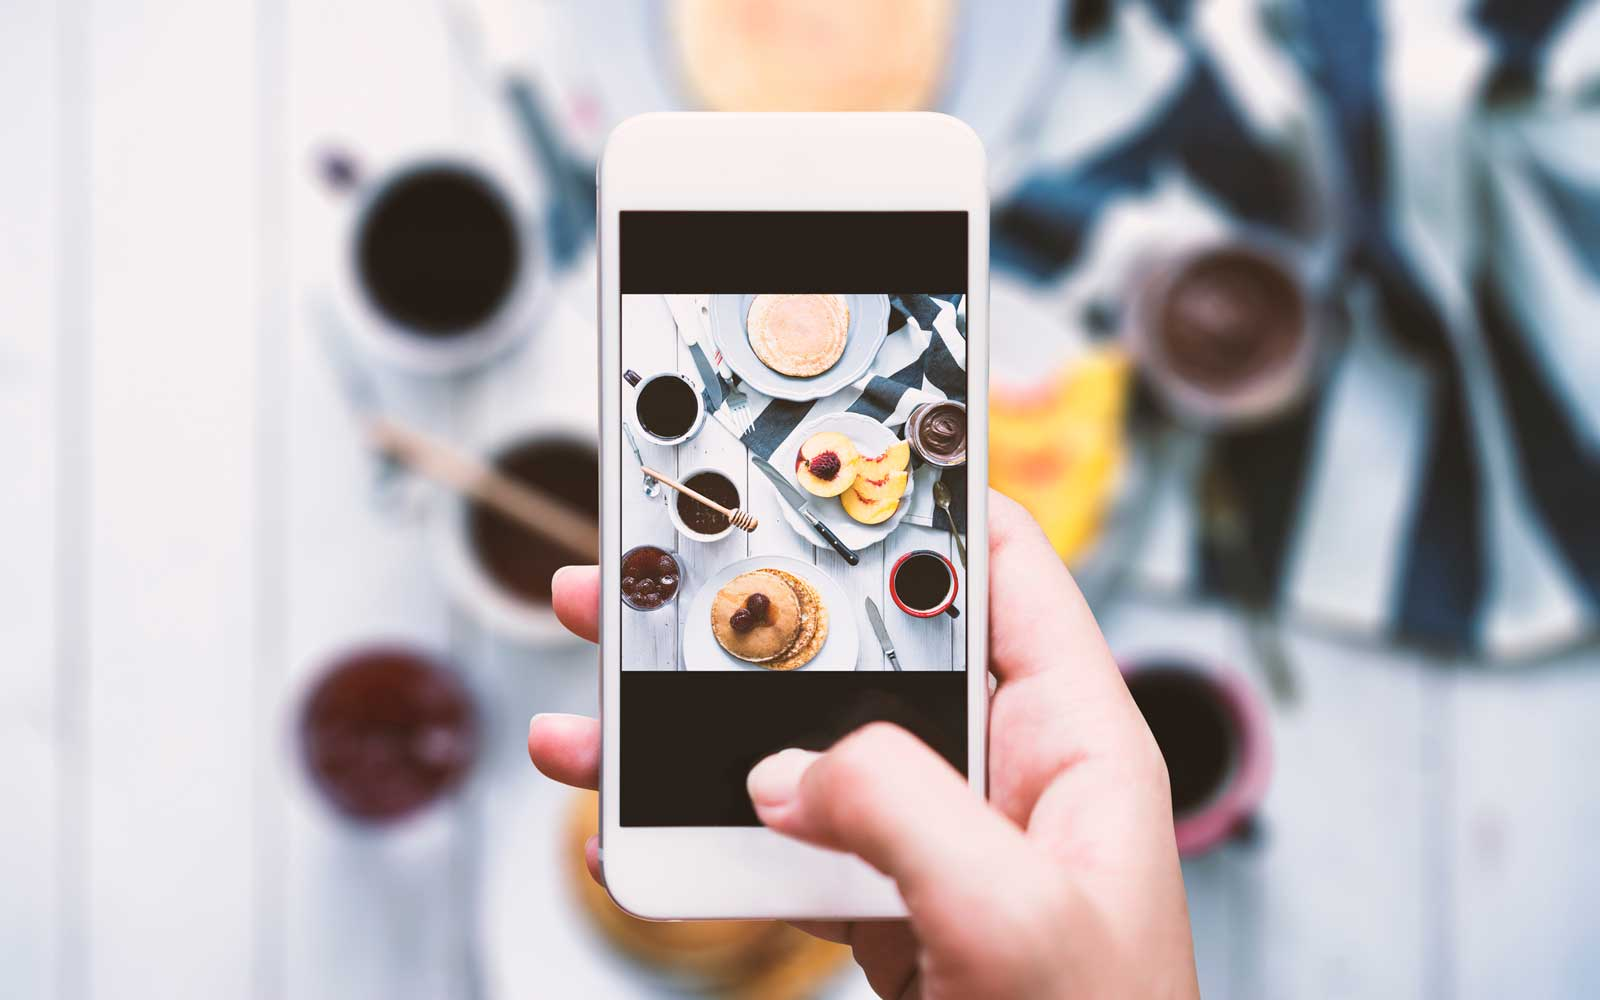 London Restaurant Gives Out Instagram Kits so Diners Can Snap Perfect Food Photos